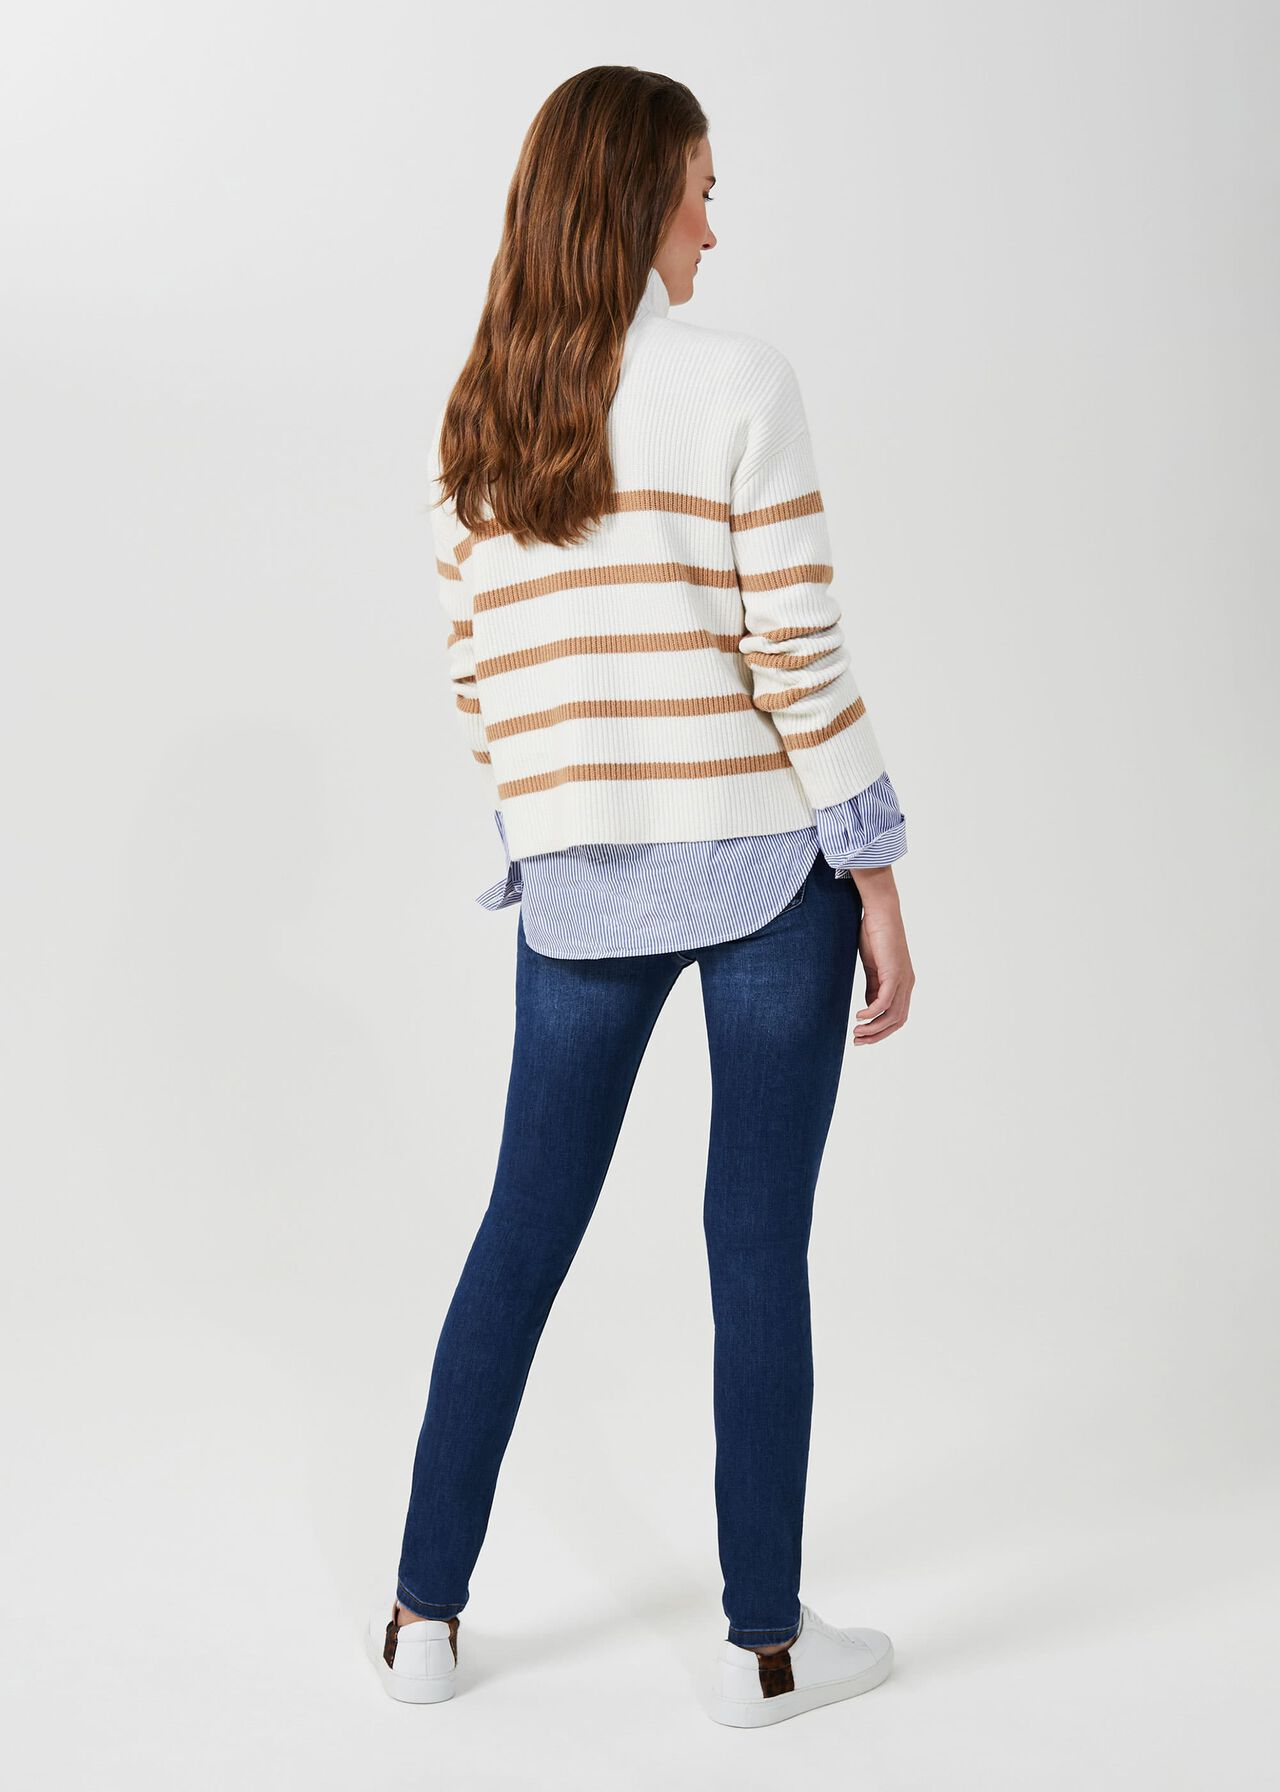 Gia Sculpting Jean With Stretch, Mid Wash, hi-res